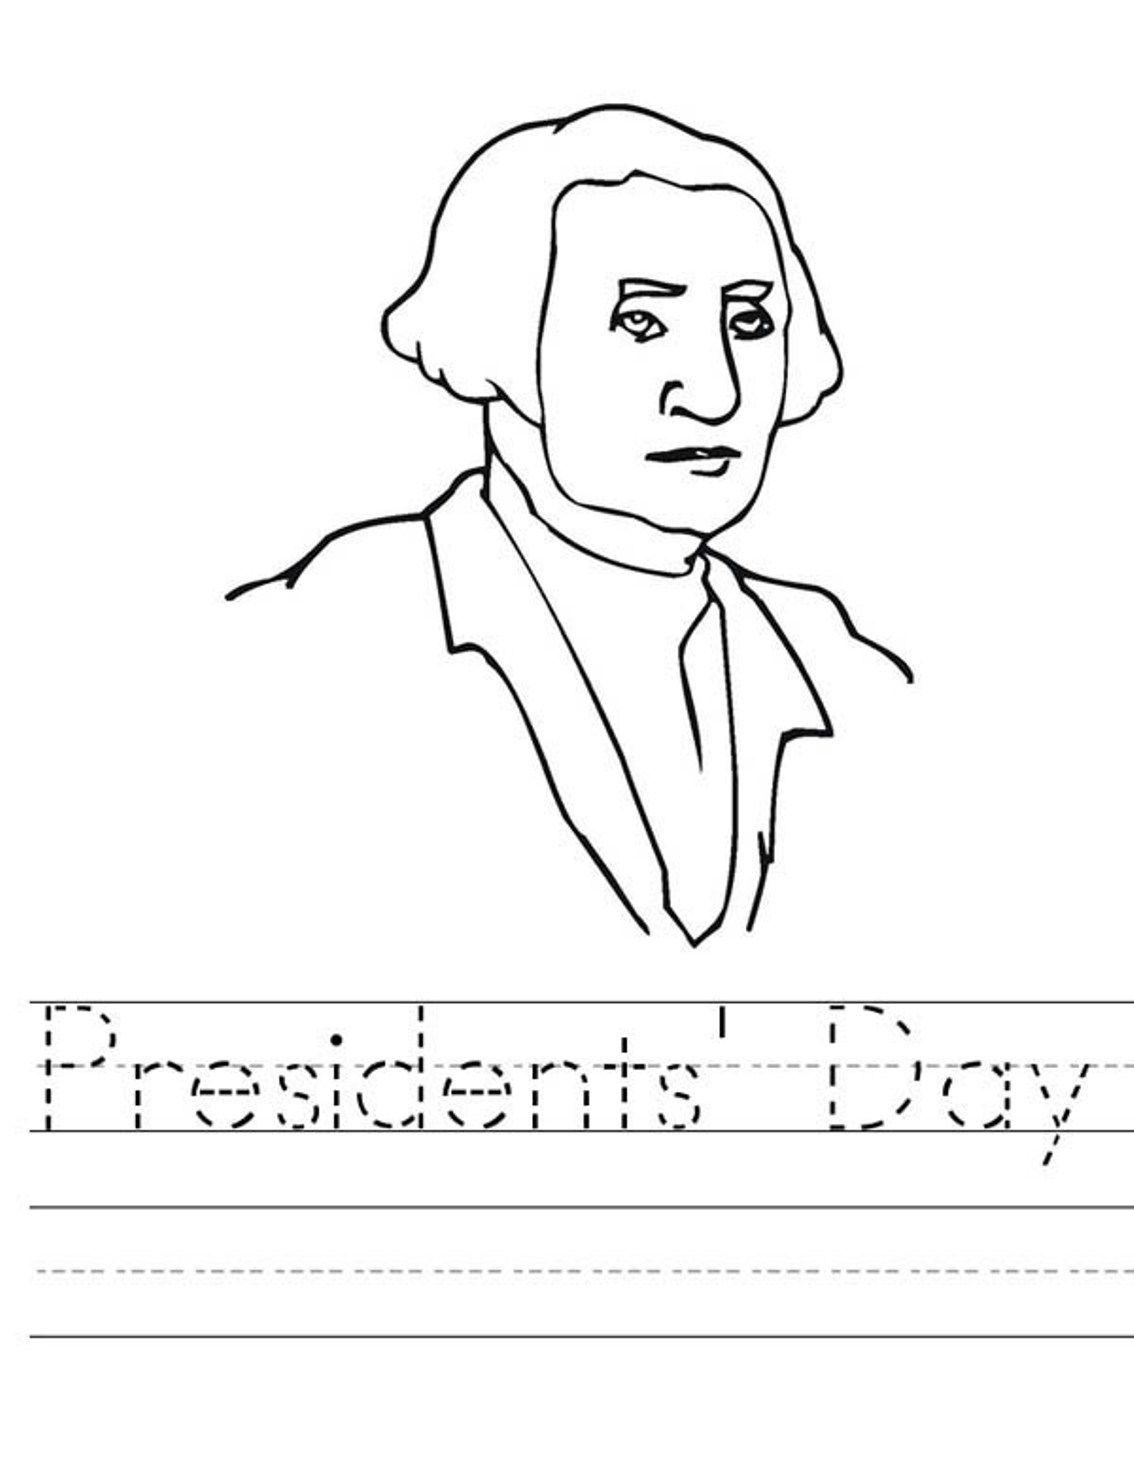 President Day Coloring Pages To Print - Coloring Home